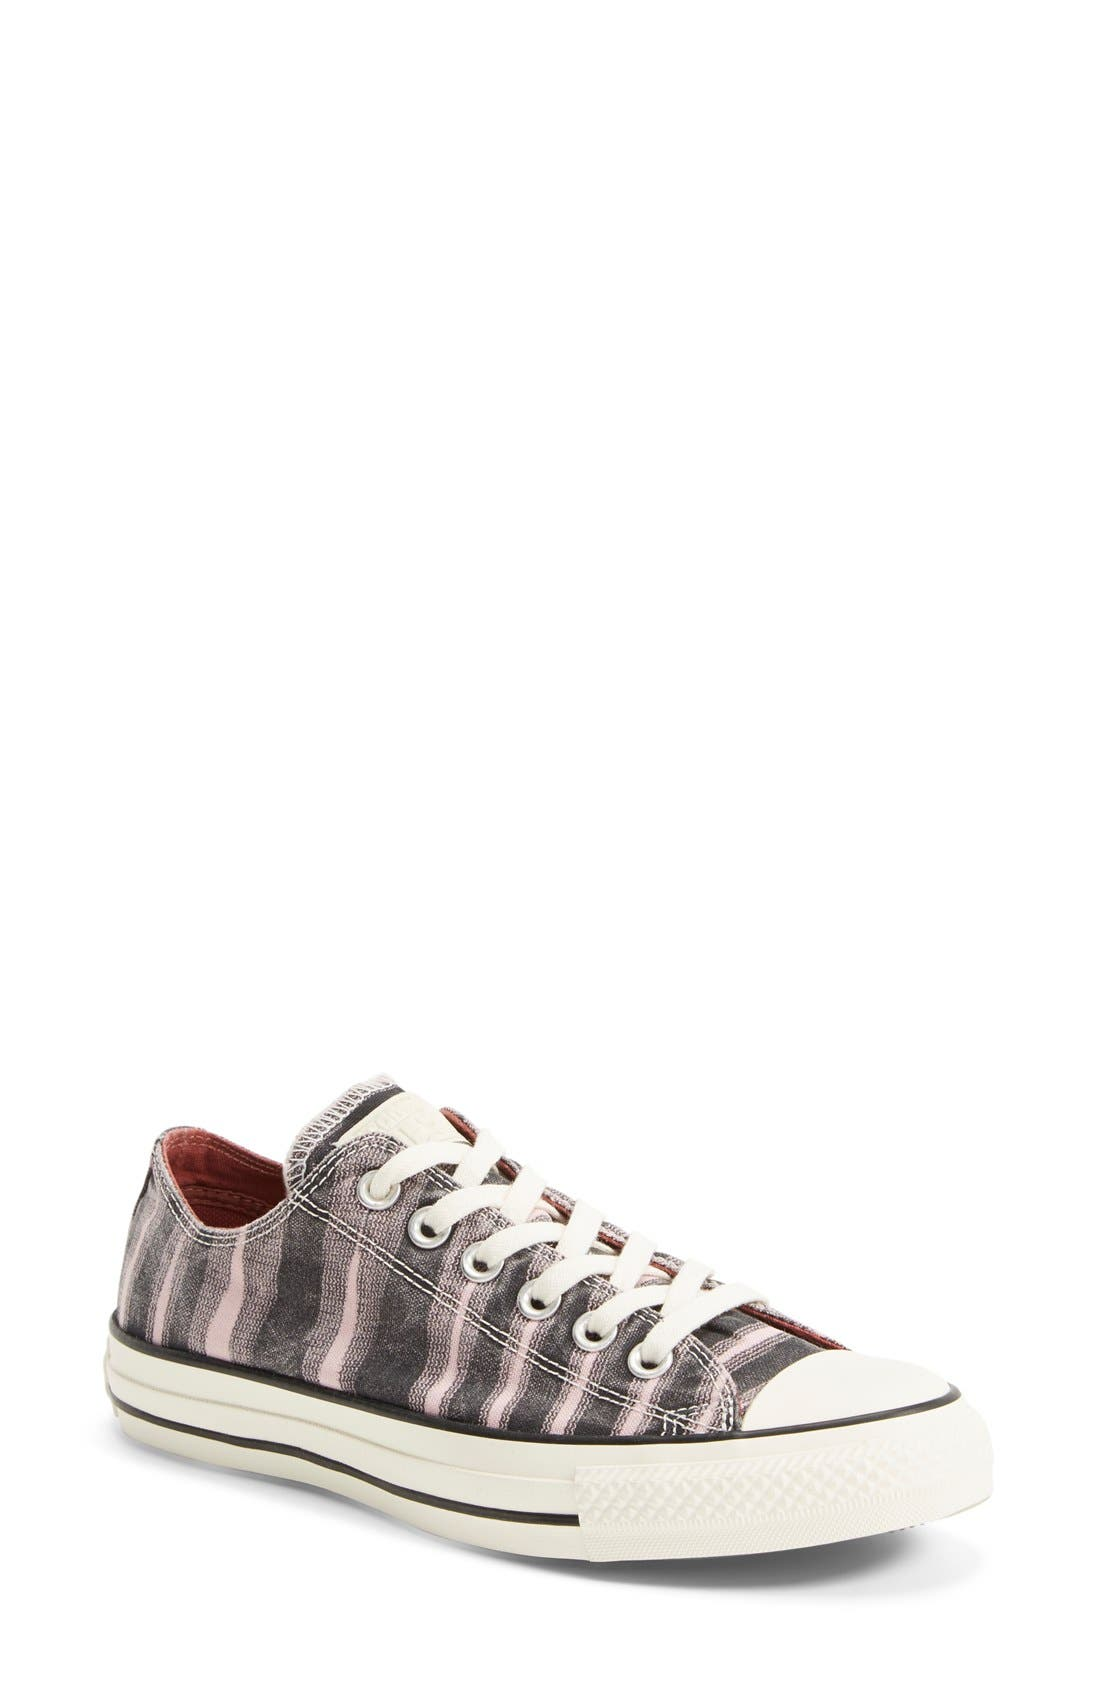 Alternate Image 1 Selected - Converse x Missoni Chuck Taylor® All Star® 'Washed Space Dye' Sneaker (Women) (Online Only)